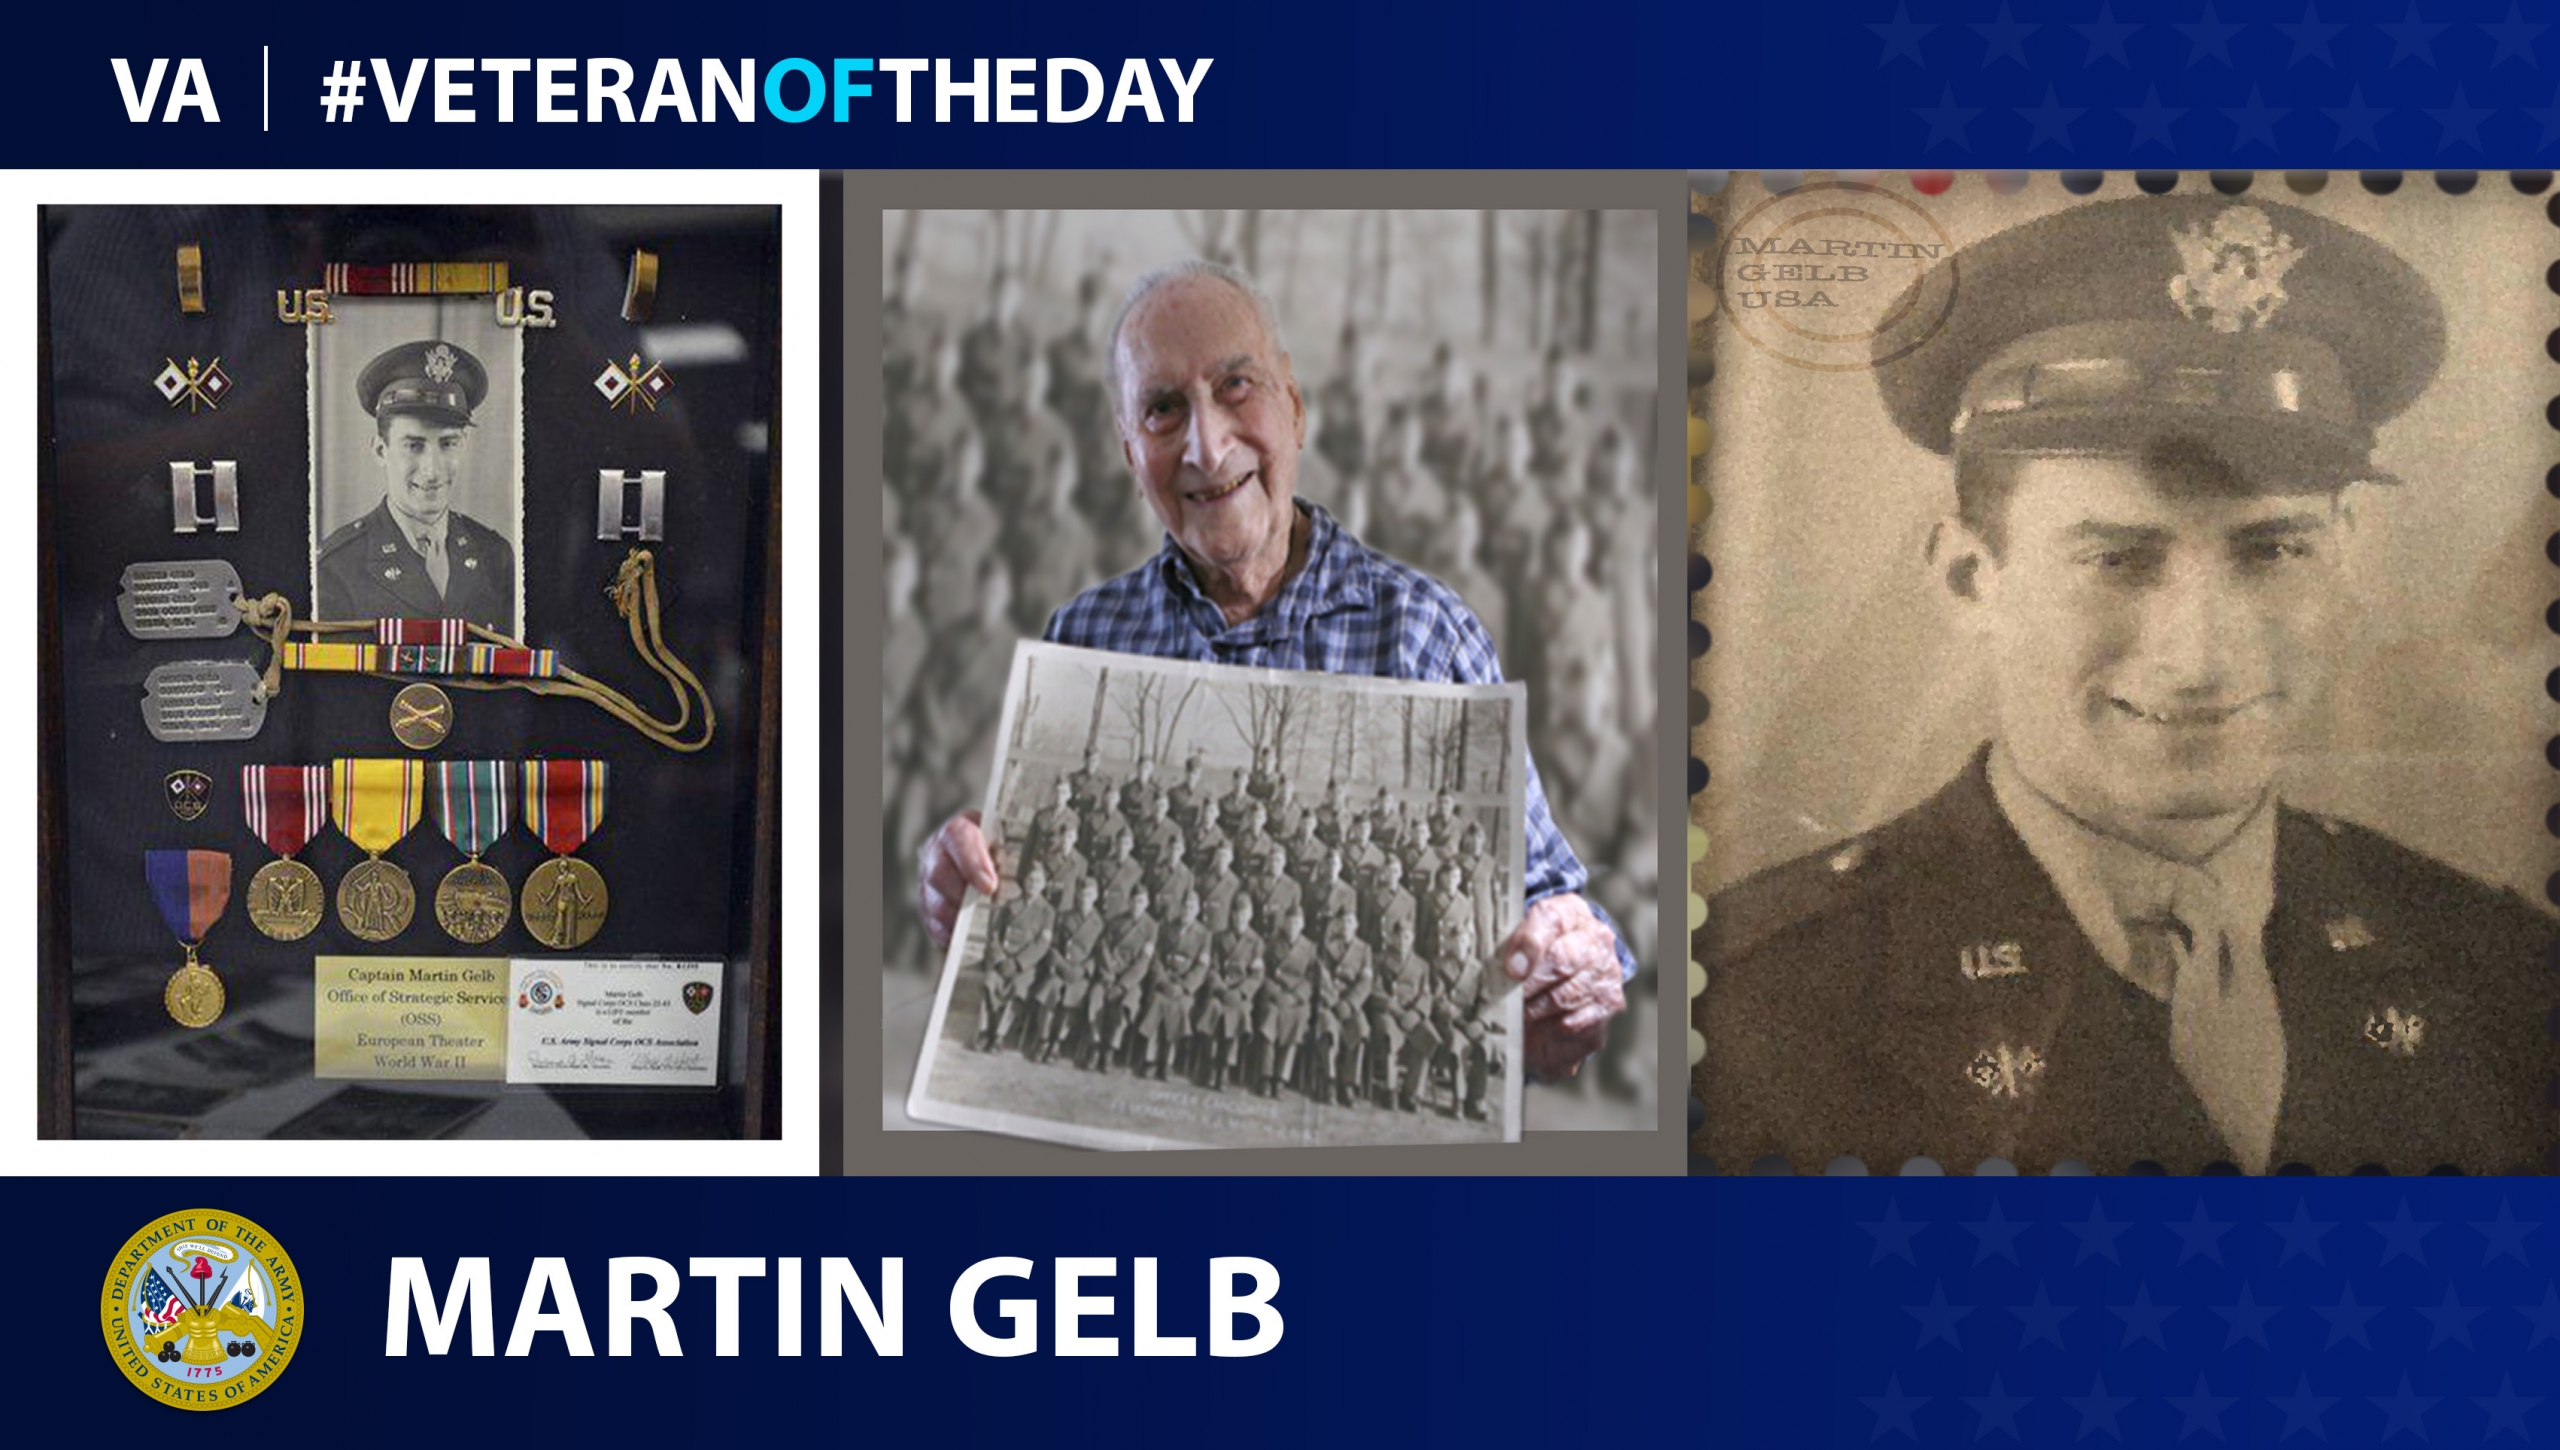 Army Veteran Martin Gelb is today's Veteran of the day.